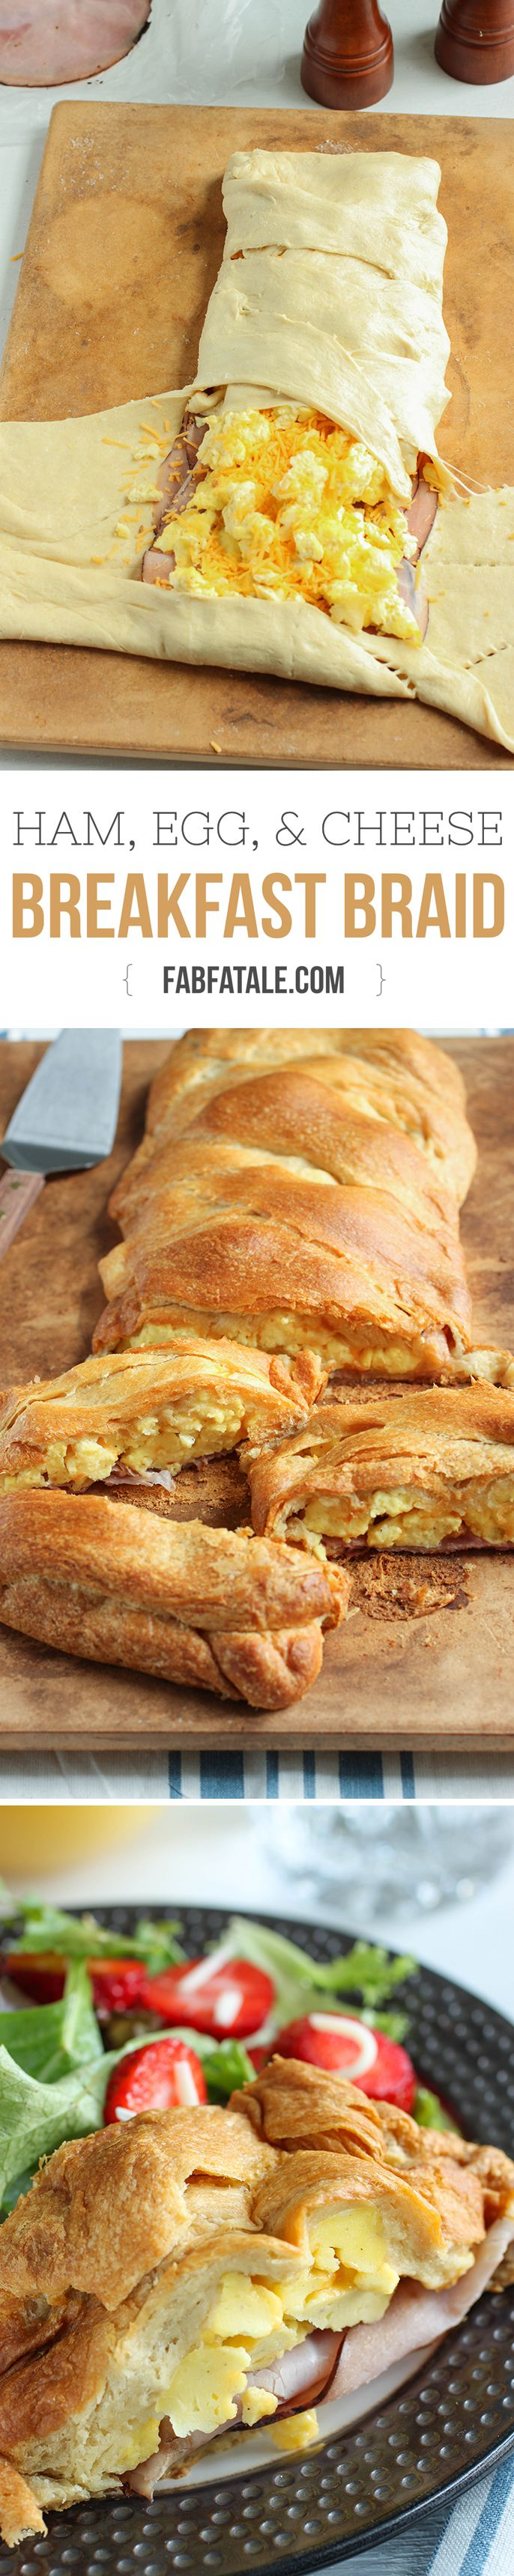 feeds a crowd and is SO good – ham, egg, and cheese croissant breakfast braid recipe #brunch